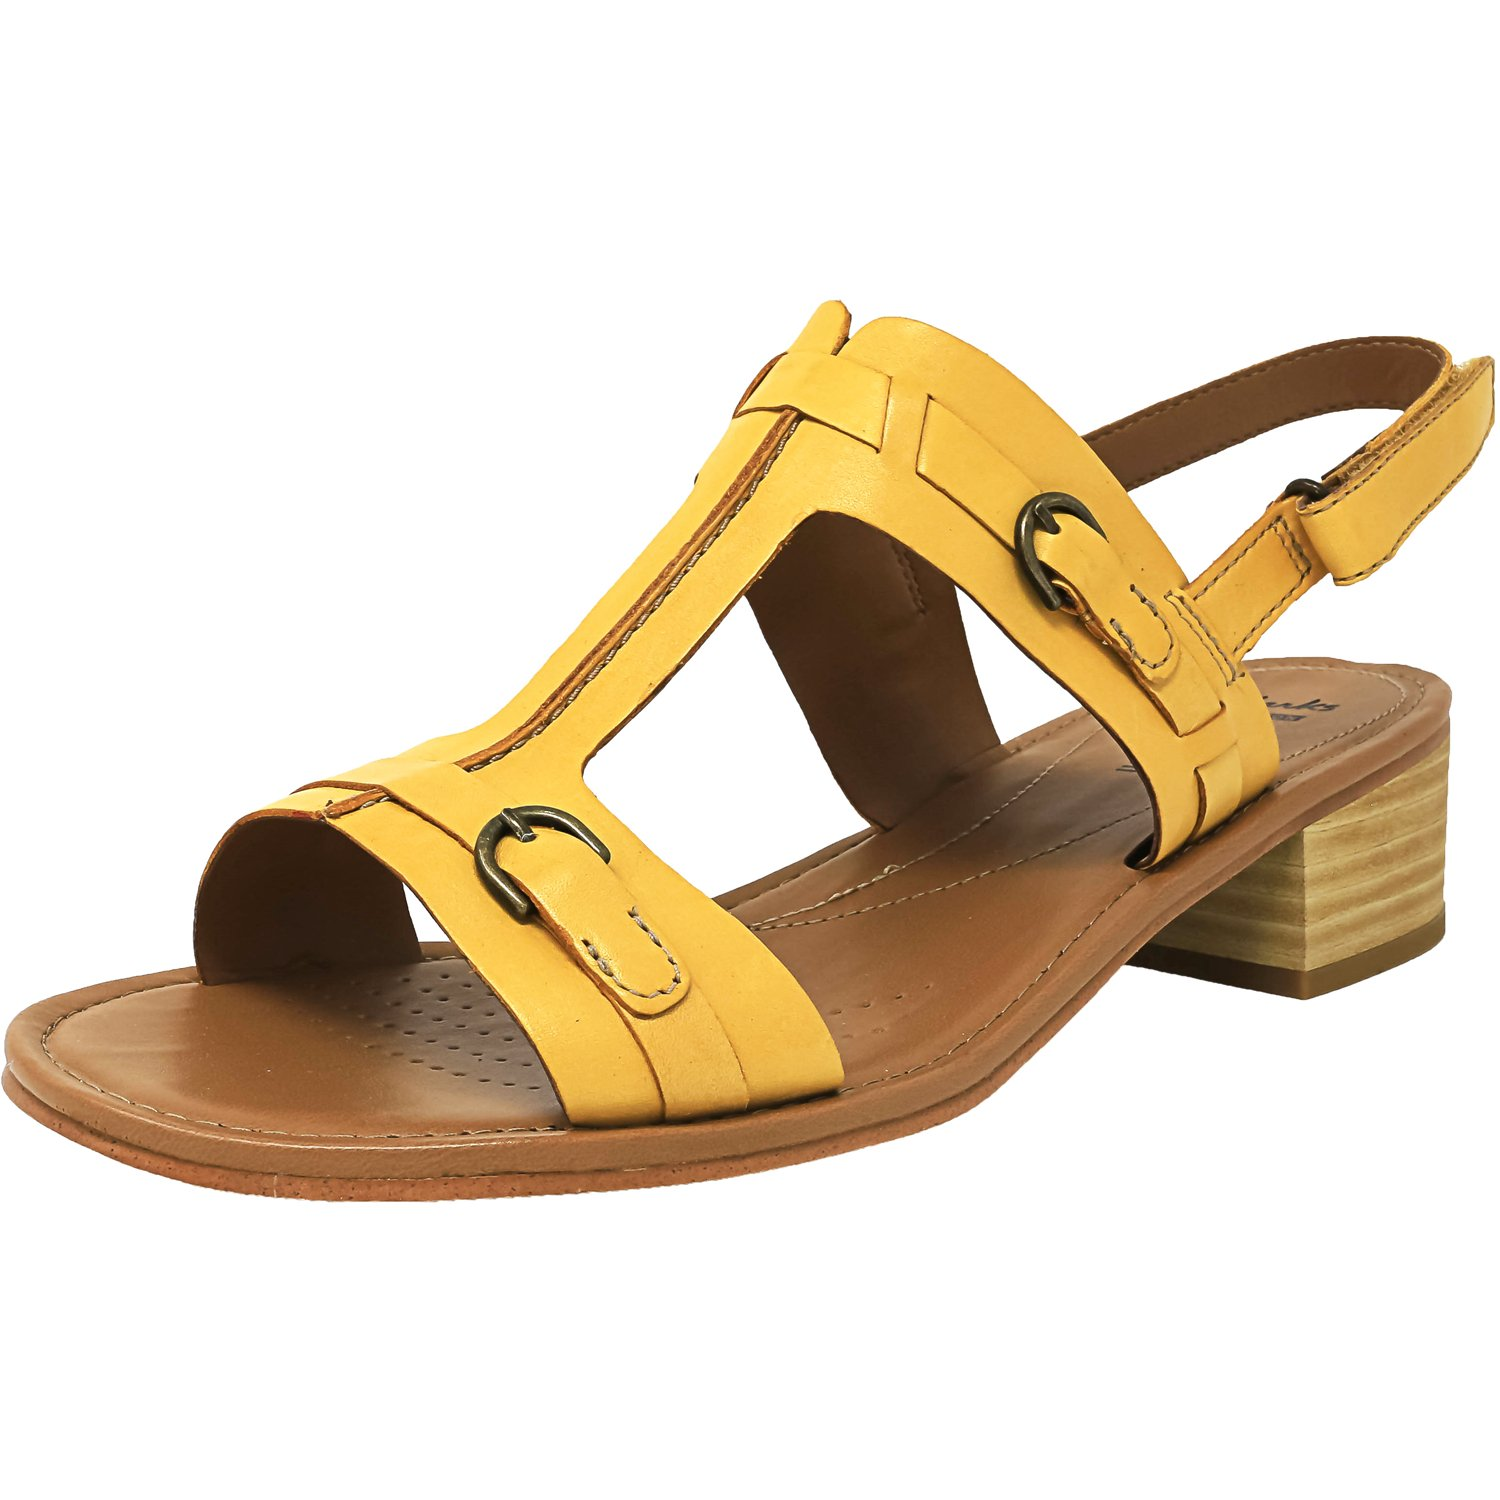 Clarks Women's Reida Madelyn Yellow Ankle-High Leather Sandal - 12W